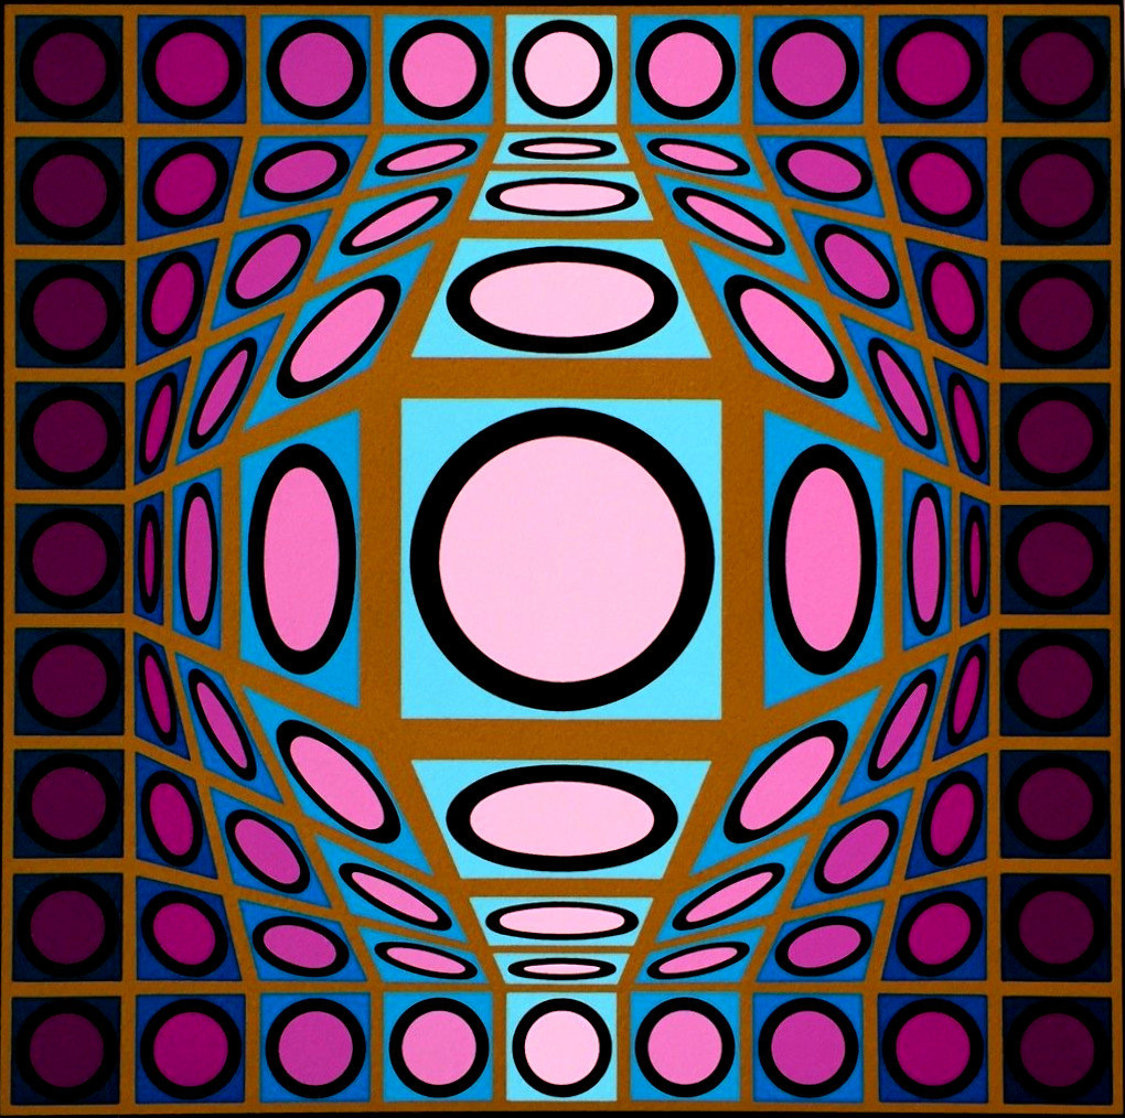 Composition Microcosmos IV 1980 Limited Edition Print by Victor Vasarely